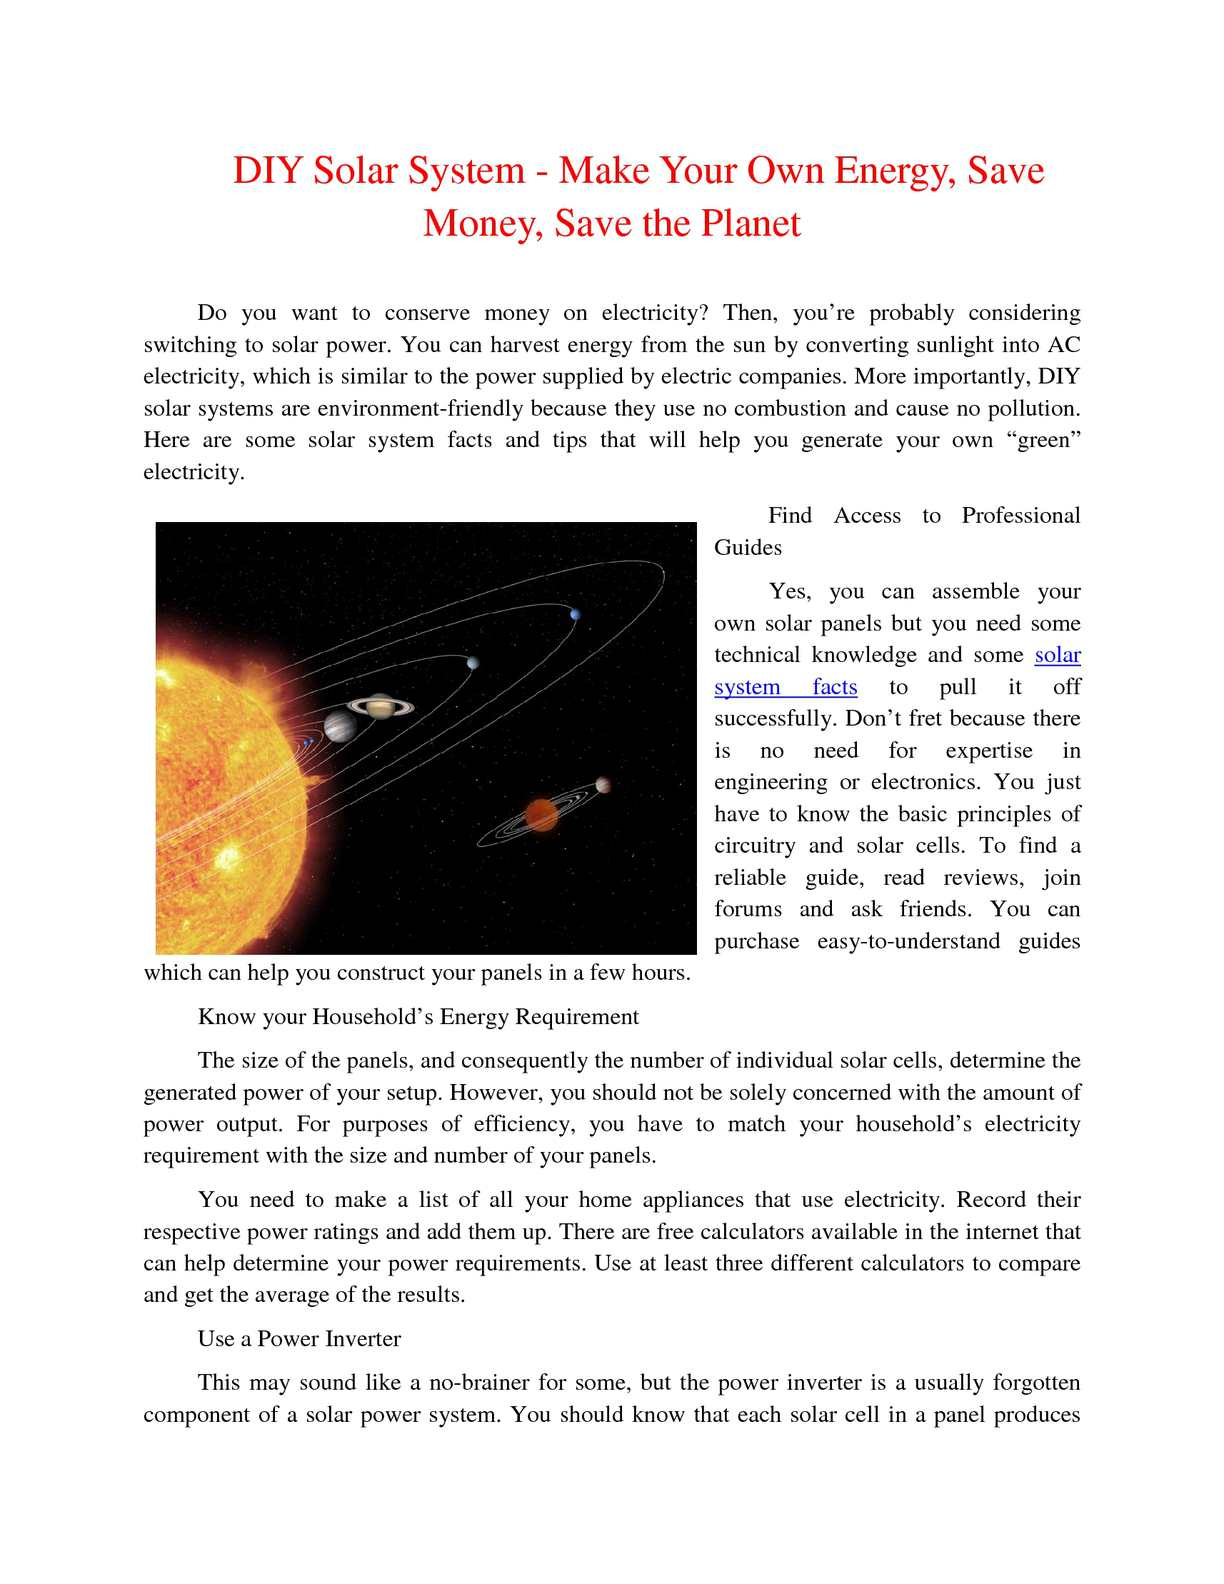 Calamo Fun Facts About The Solar System How Does Panel Make Electricity From Sunlight